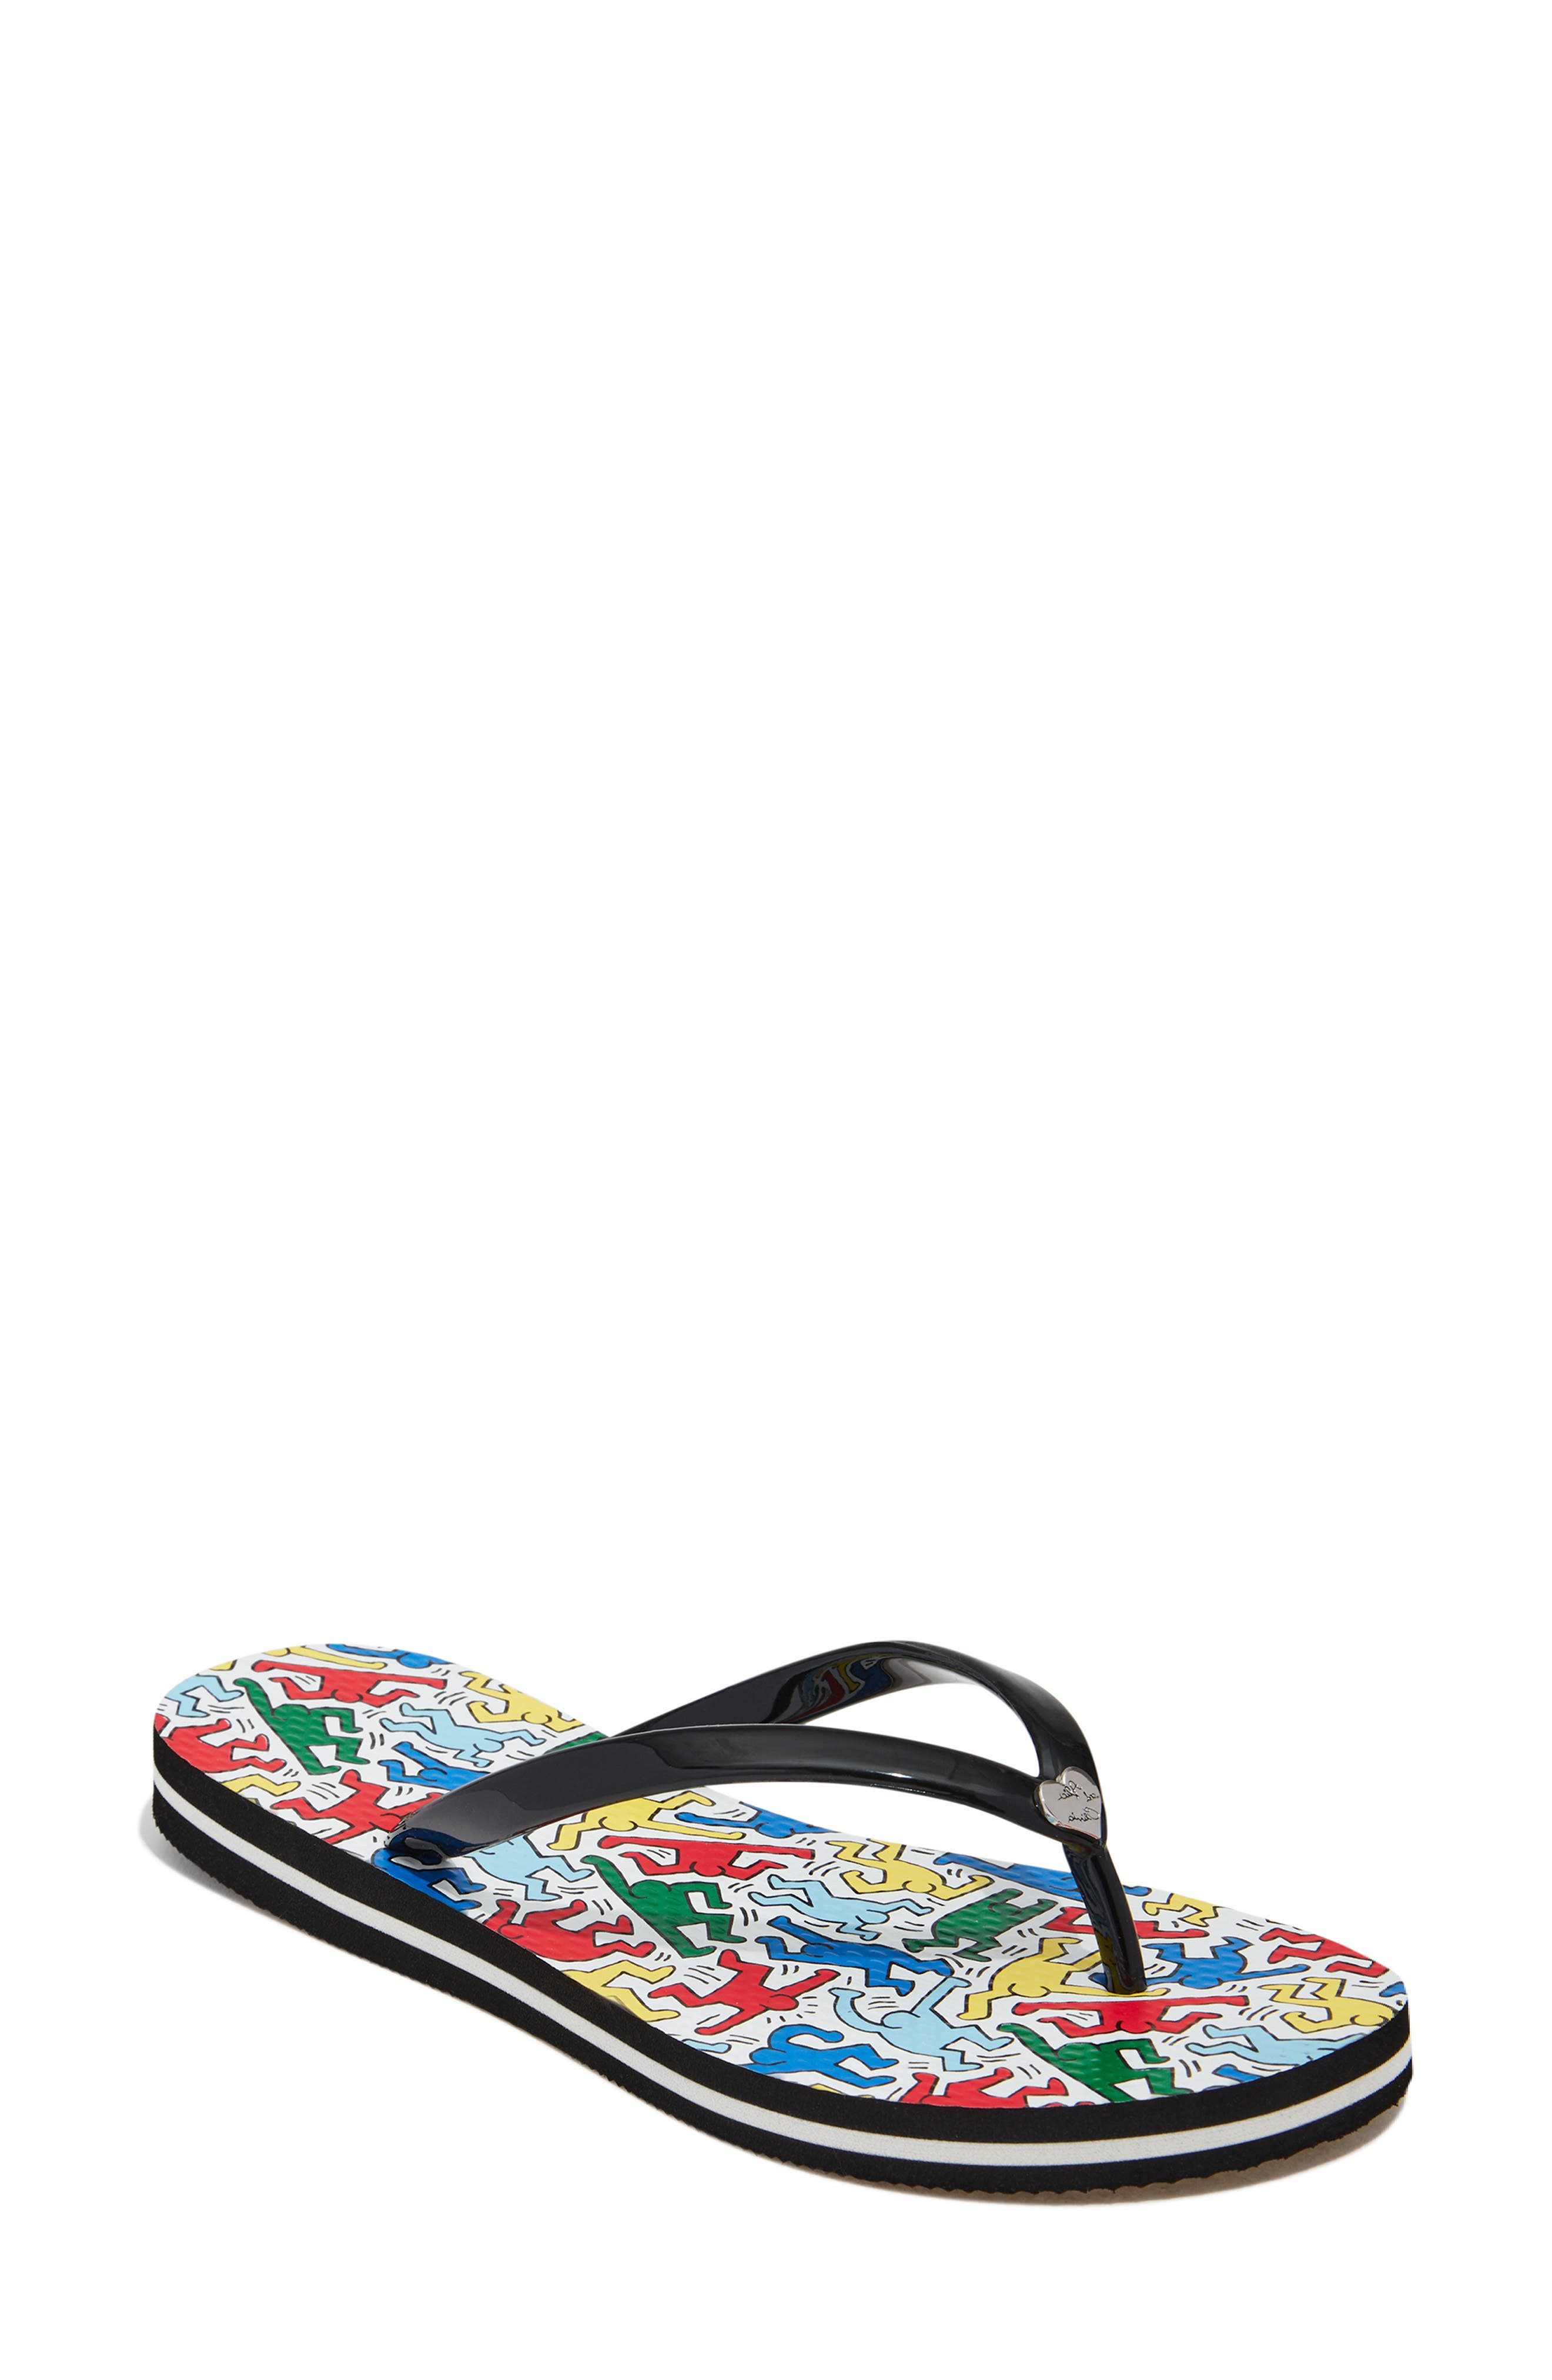 Keith Haring X Alice +Olivia Dancing Man Sandals in Multi/ White